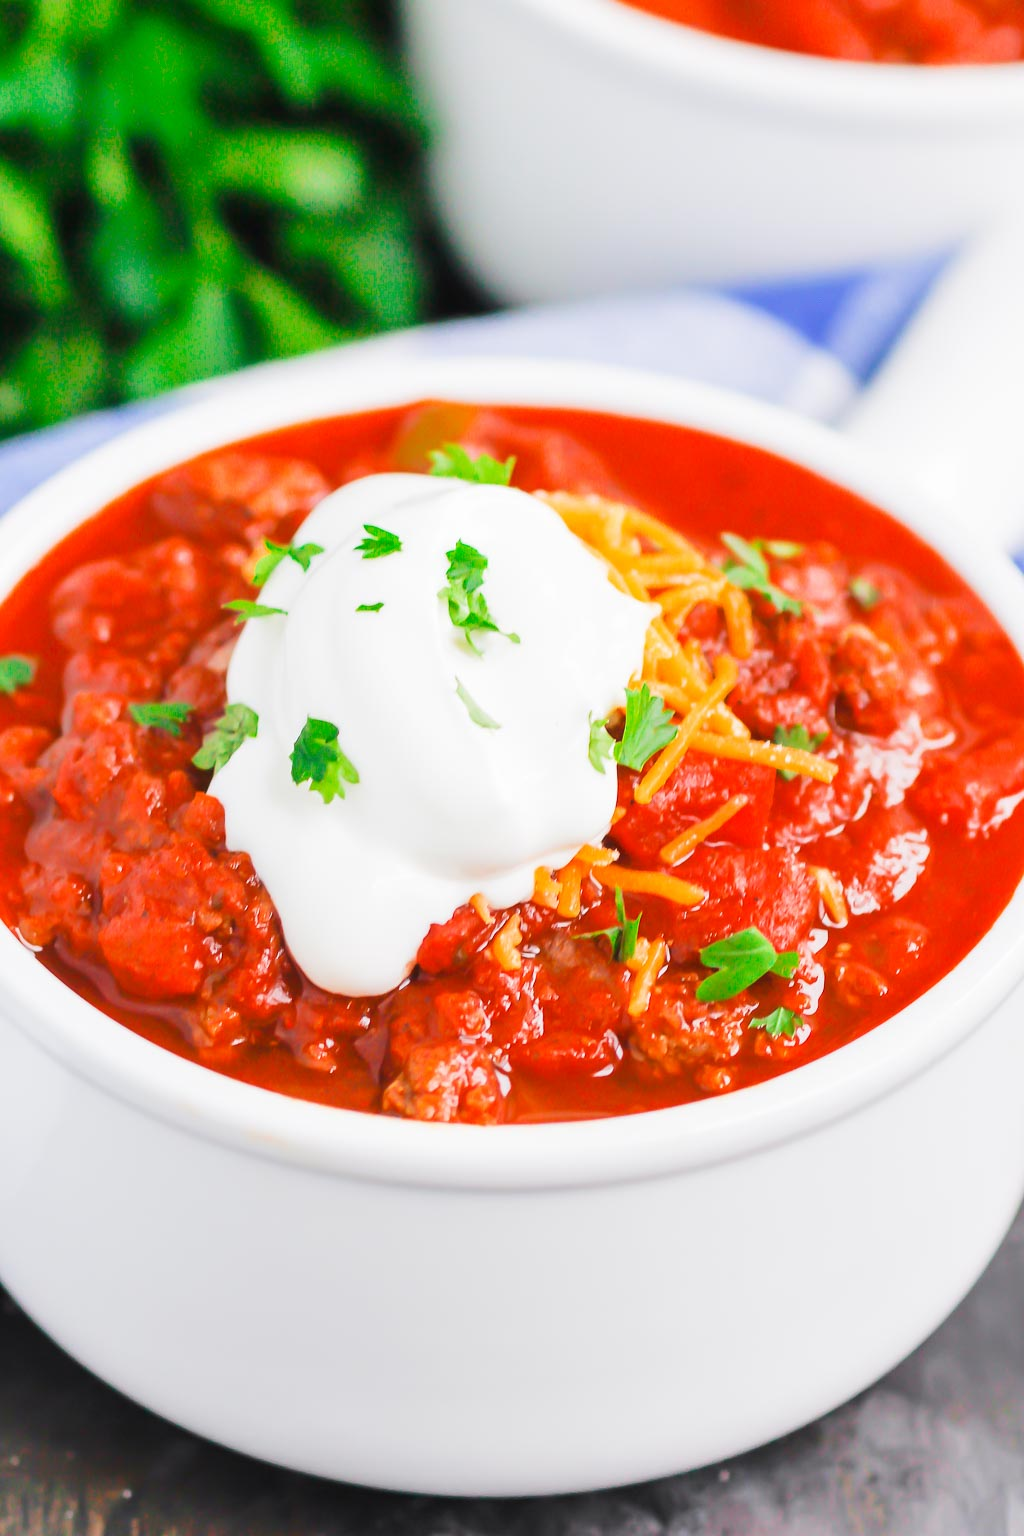 Instant Pot No Bean Chili is a simple, hearty meal that's ready in no time. Made with two types of ground beef and loaded with flavor, you'll never miss the beans in this cozy dish! #chili #nobeanchili #chilinobeans #instantpot #instantpotchili #Instantpotnobeanchili #dinner #comfortfood